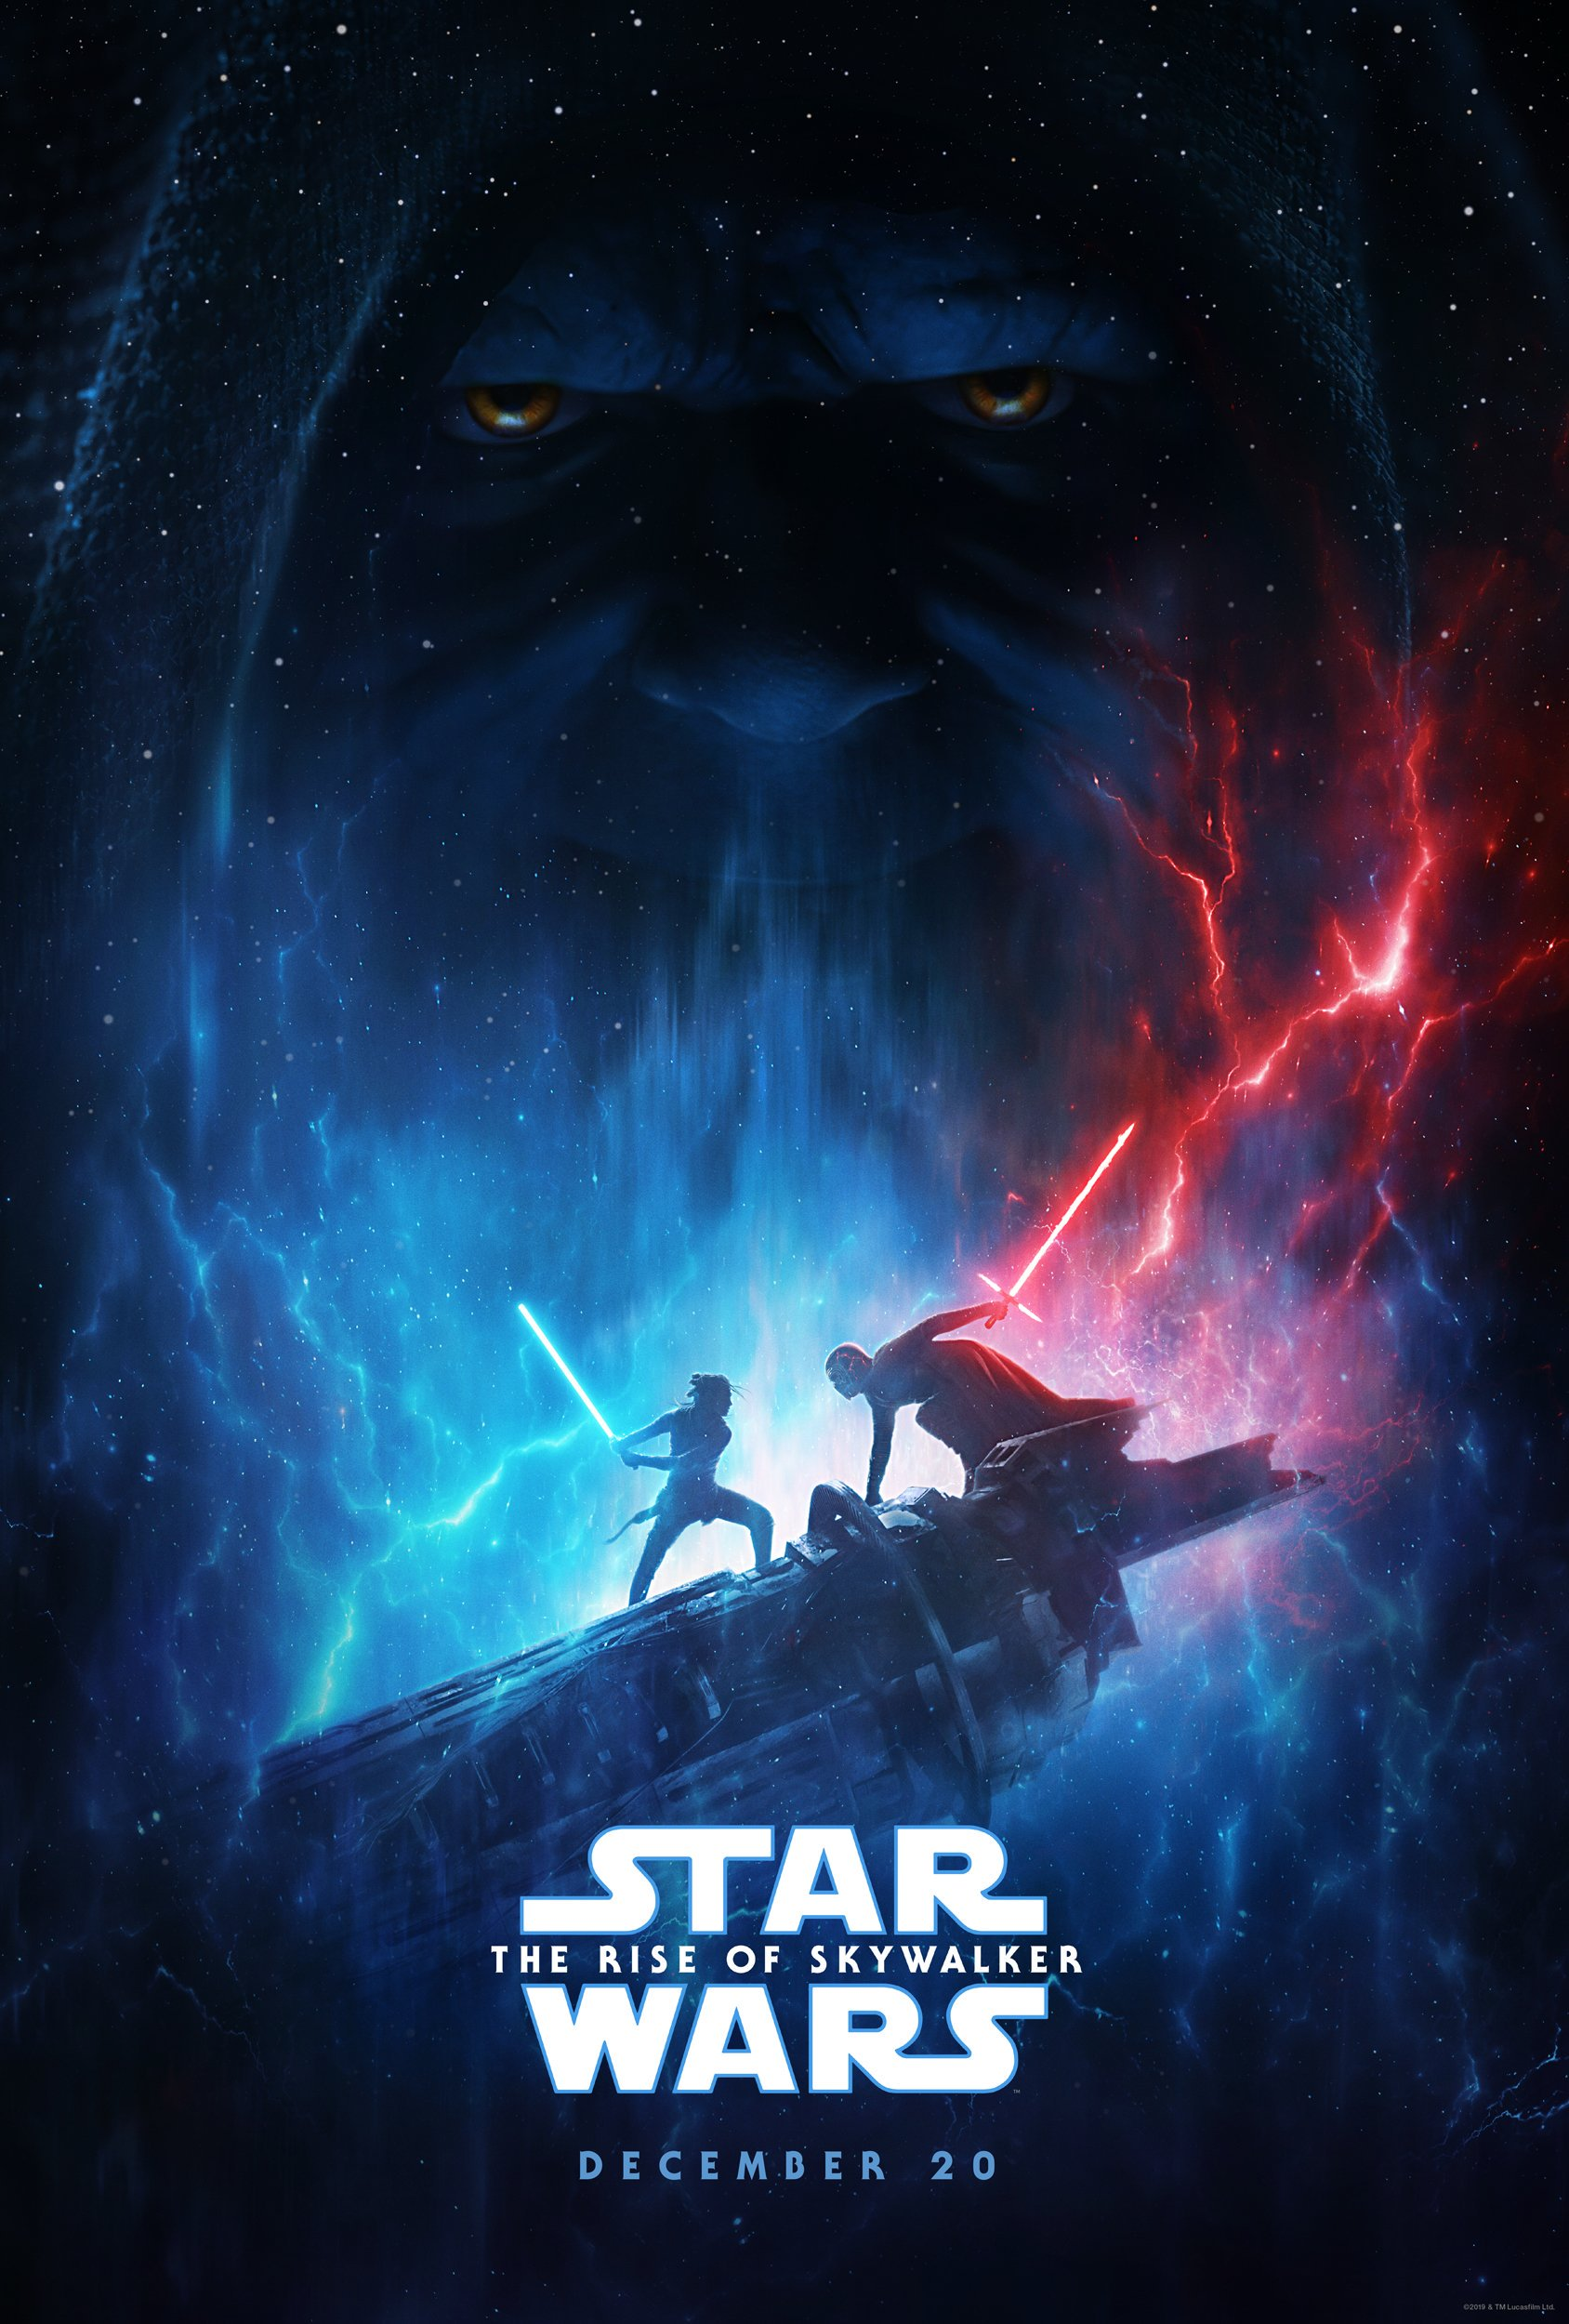 star wars the rise of skywalker official poster - Nuevo Teaser de Star Wars: The Rise of Skywalker con la Rey Oscura